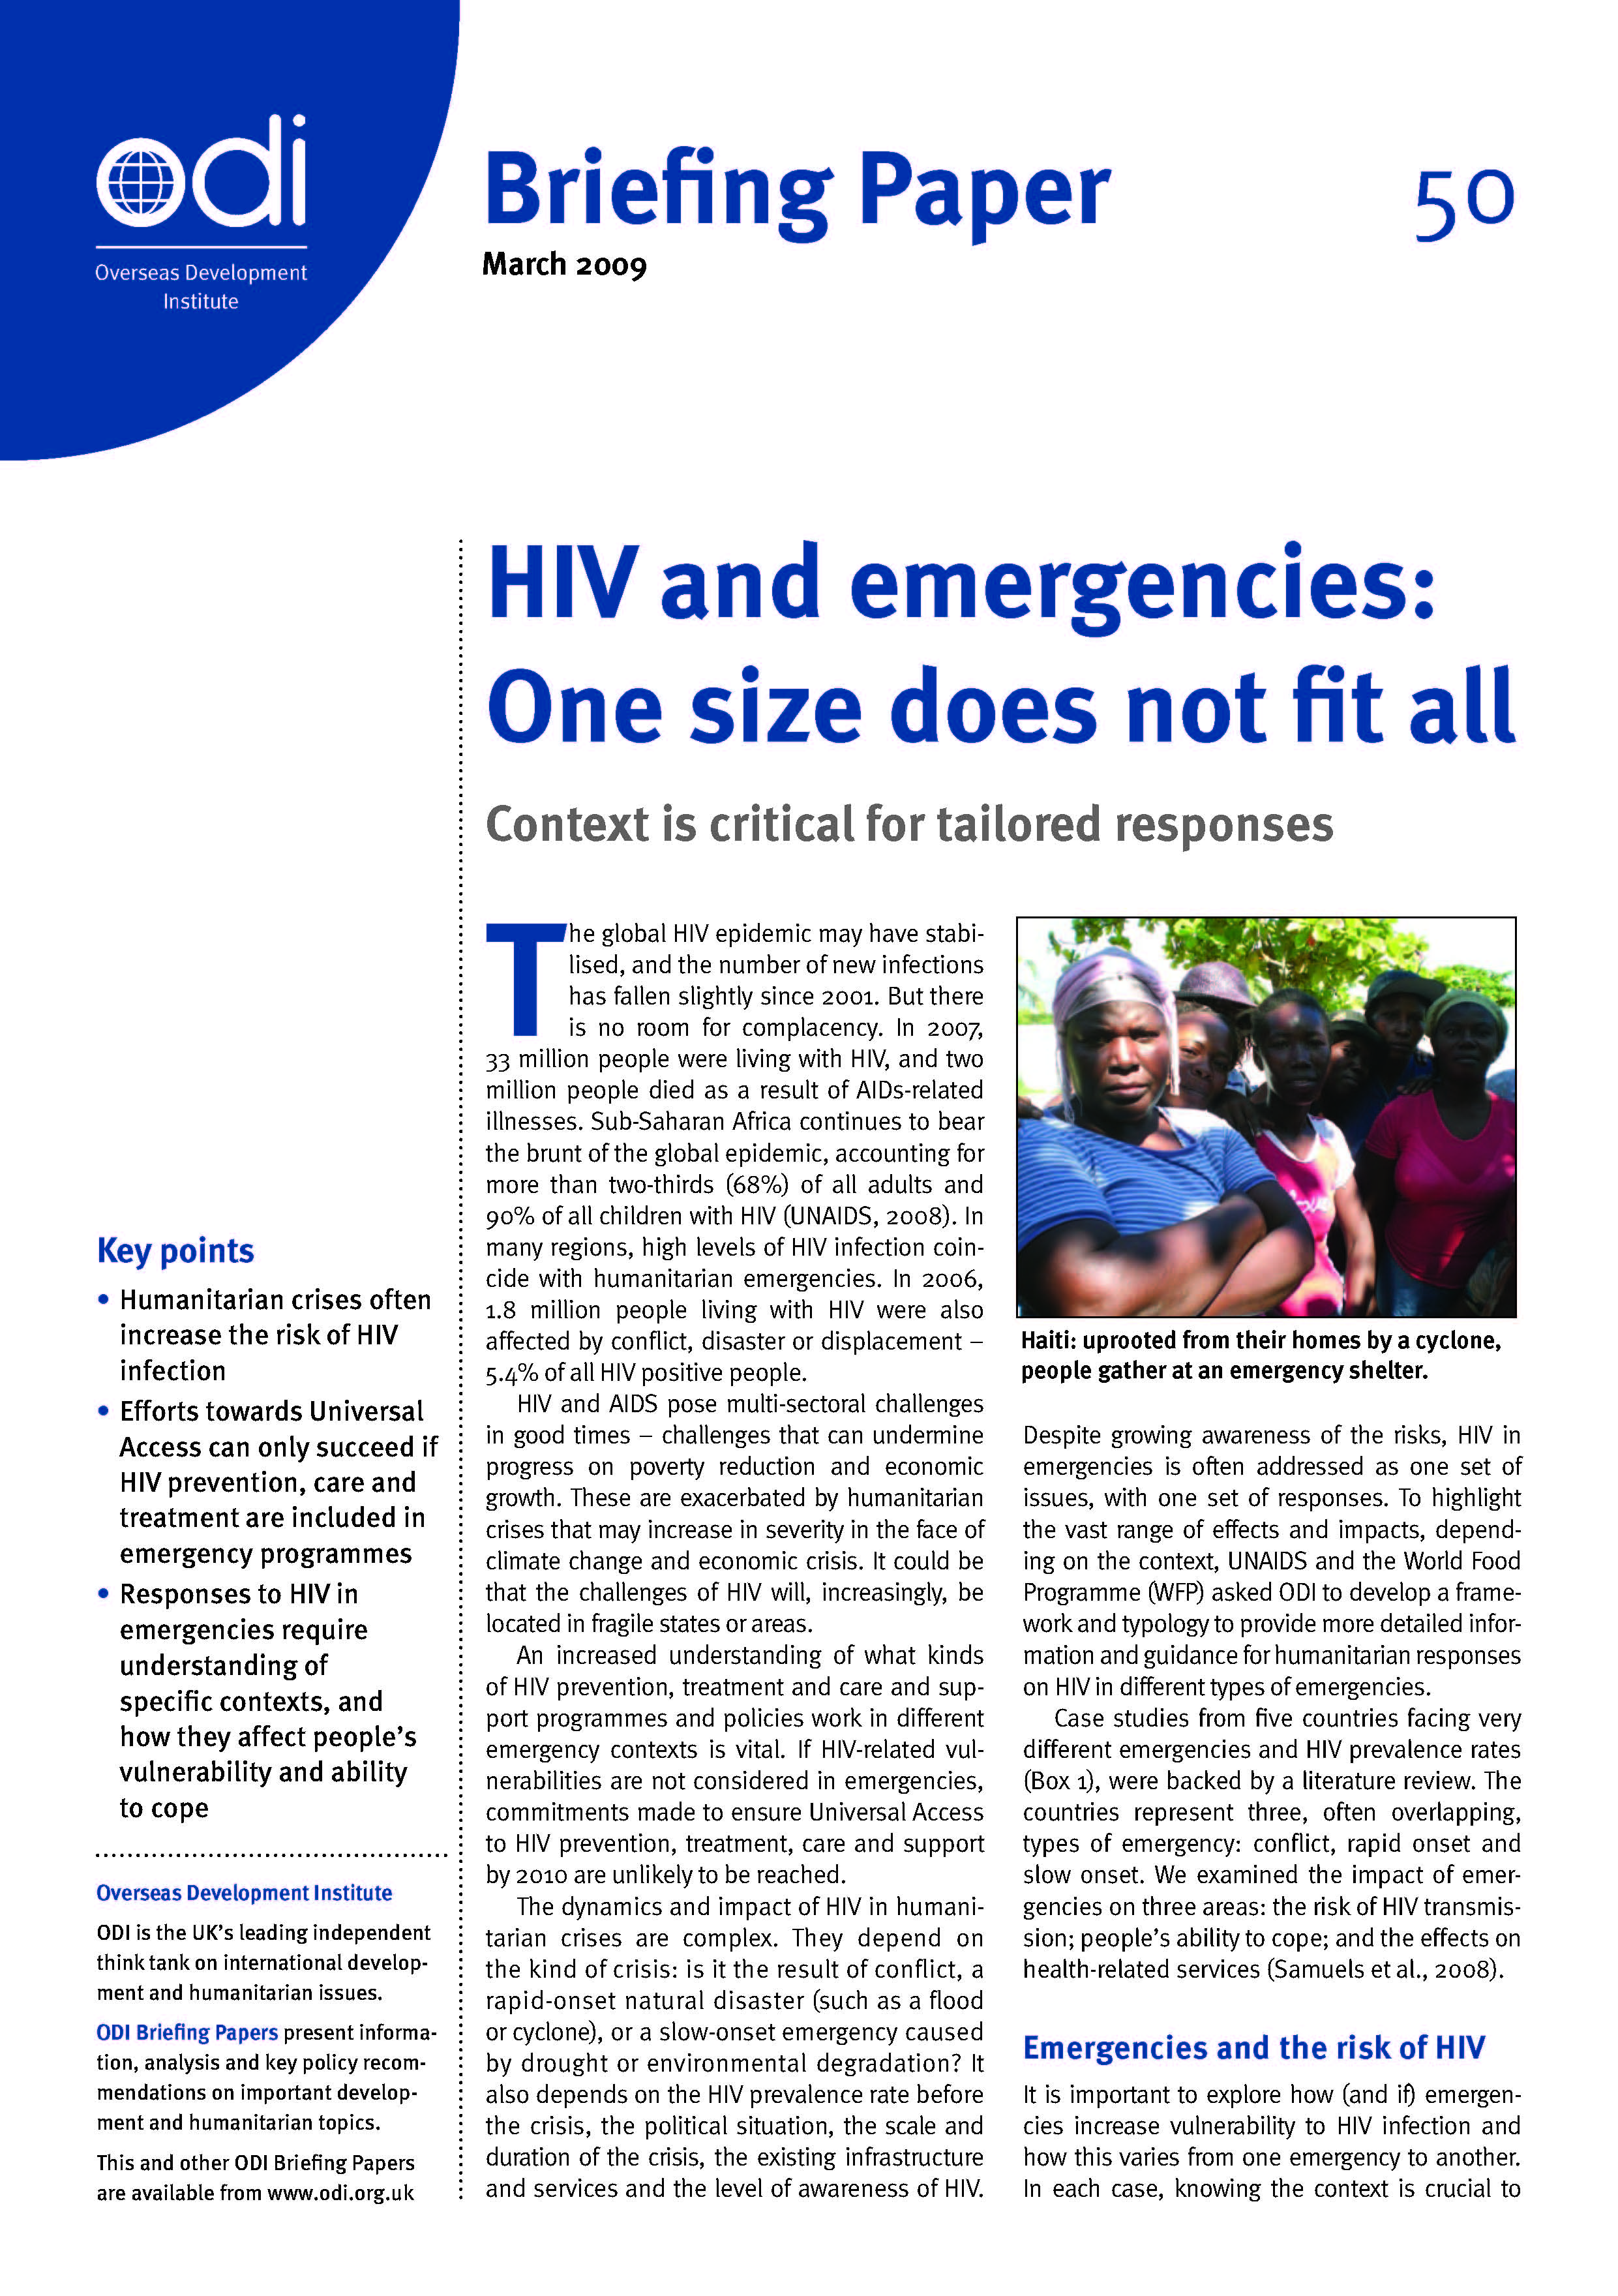 HIV and emergencies